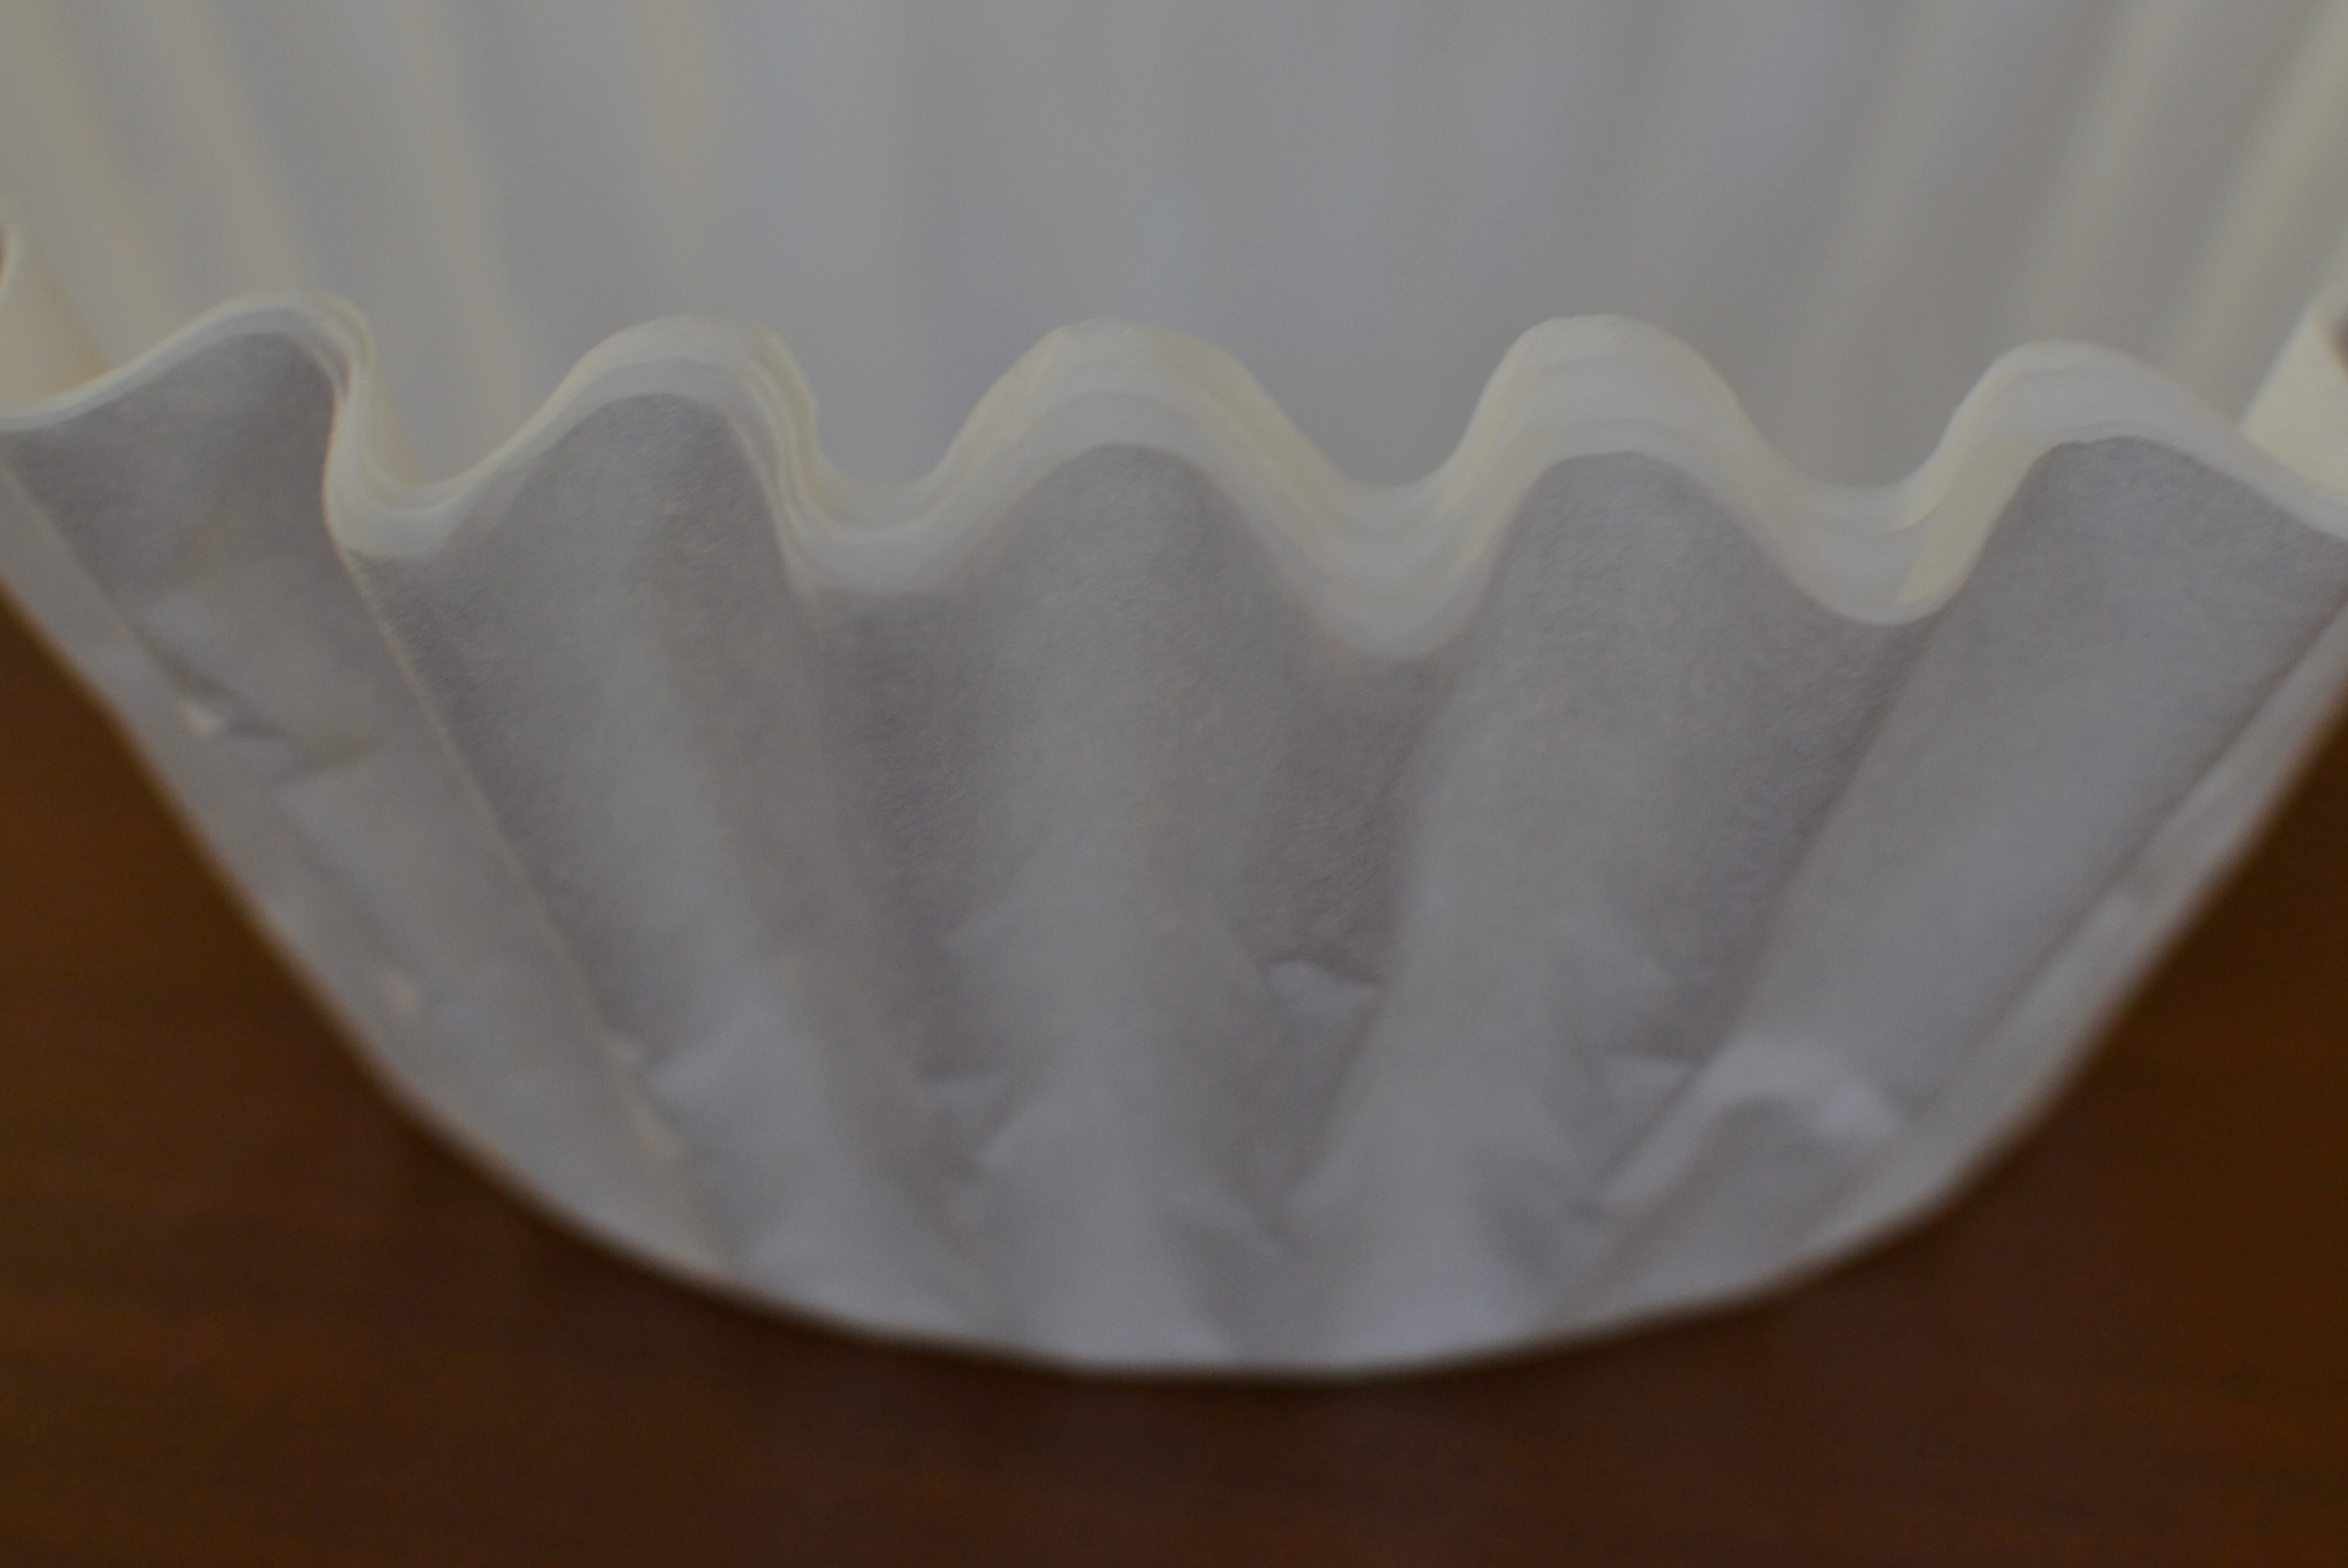 using coffee filters as tea bags